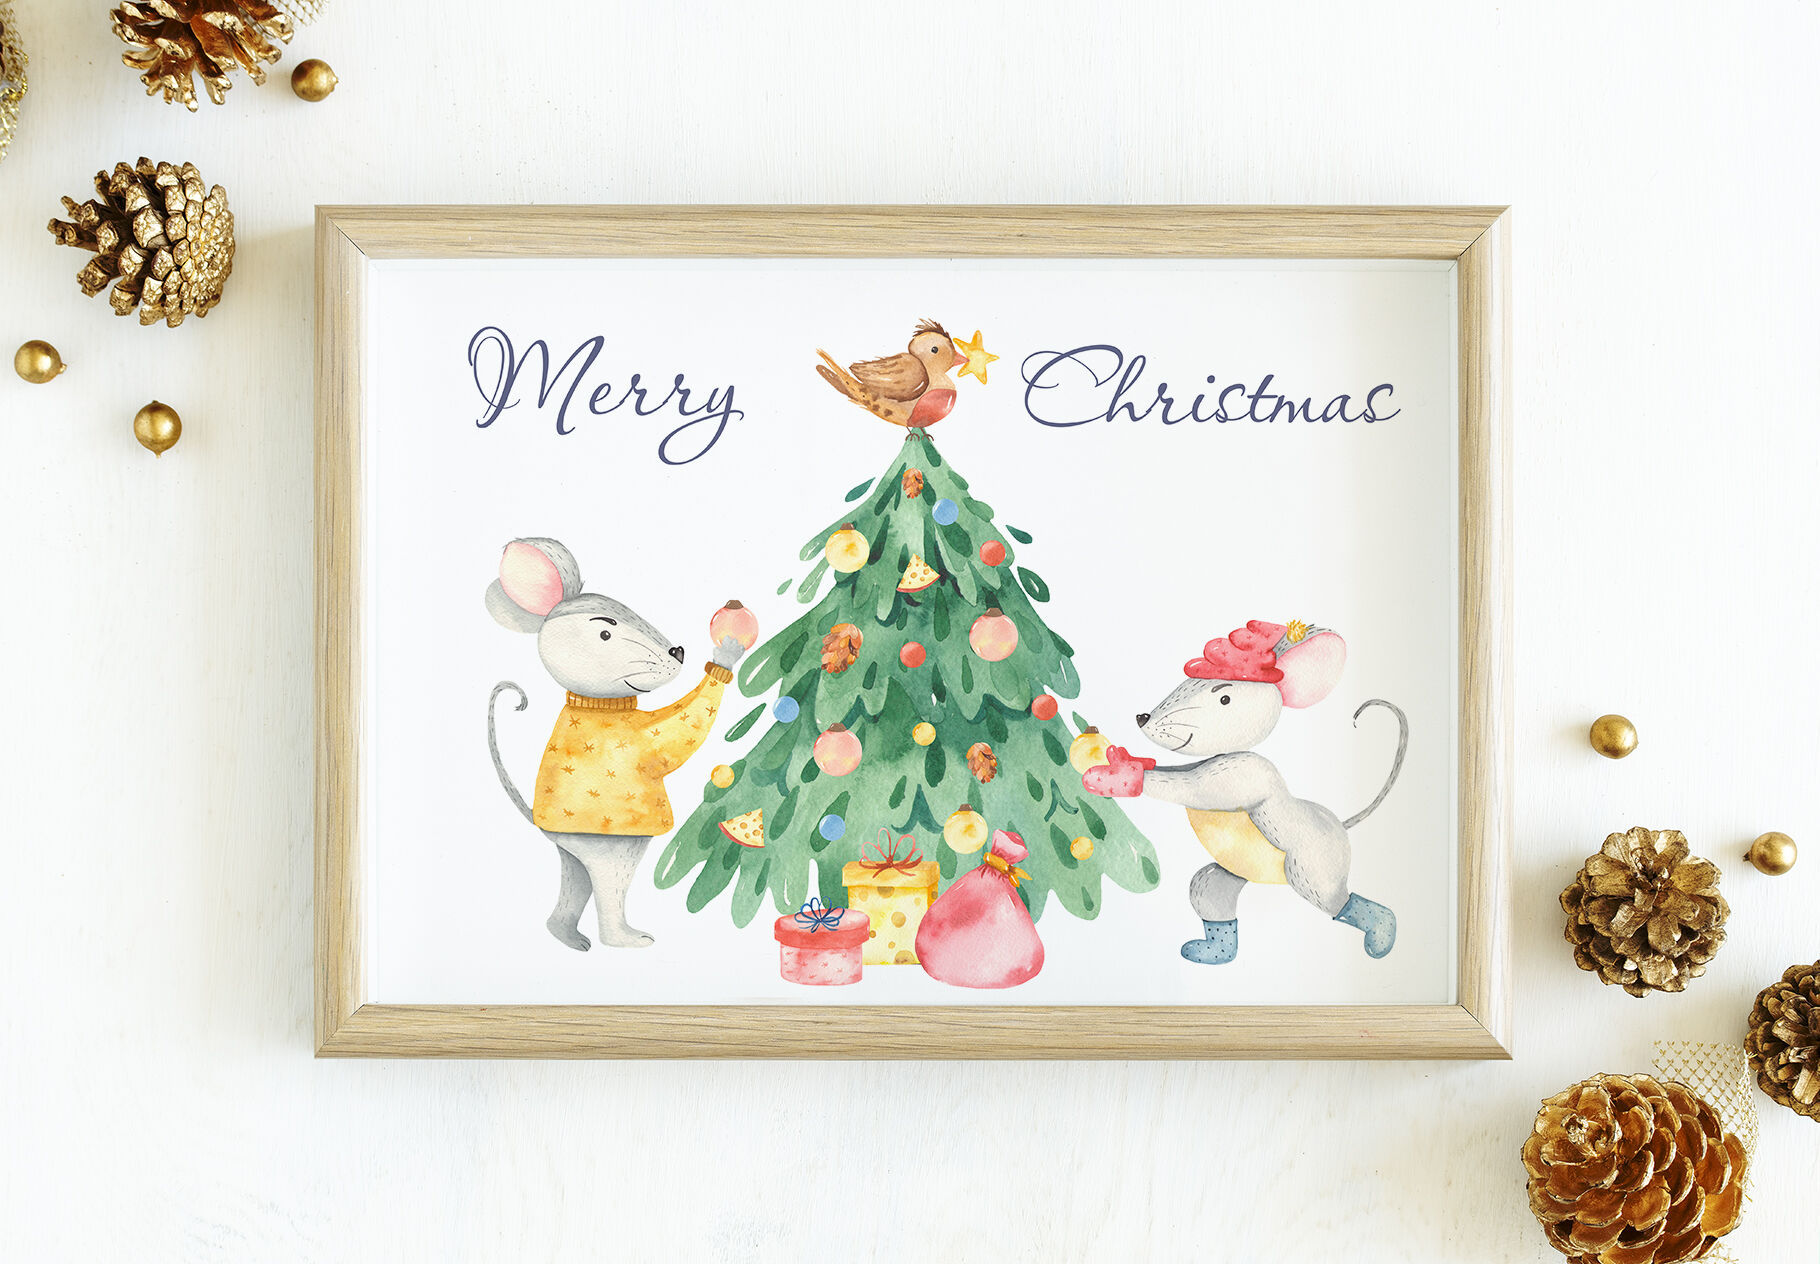 Cute Rats Watercolor Christmas Cards Frames Patterns By Marina